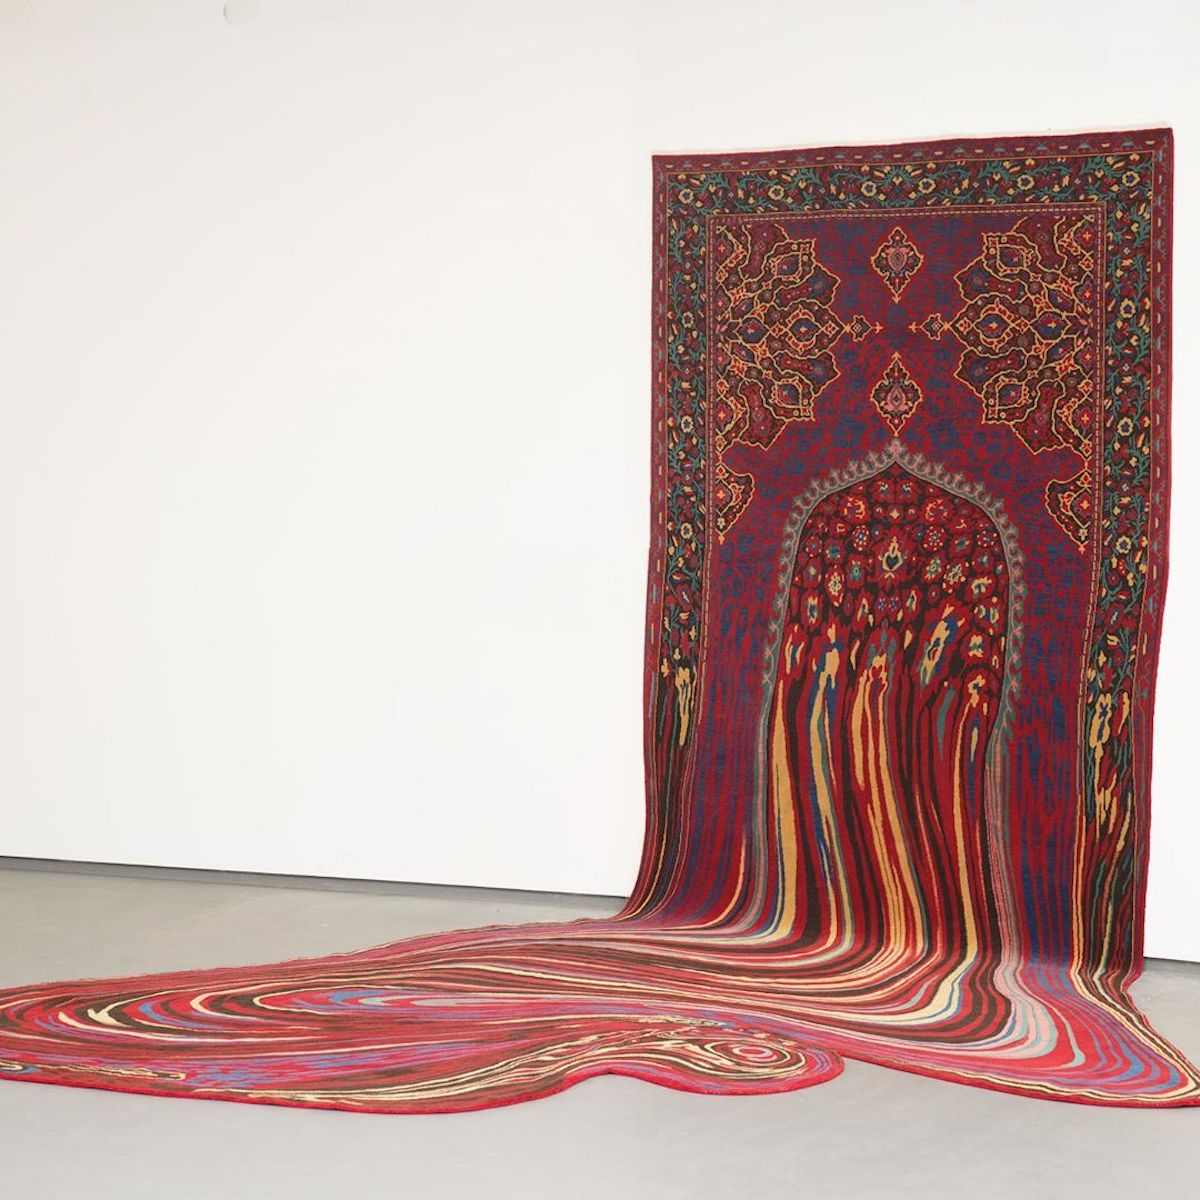 Carpets by Faig Ahmed